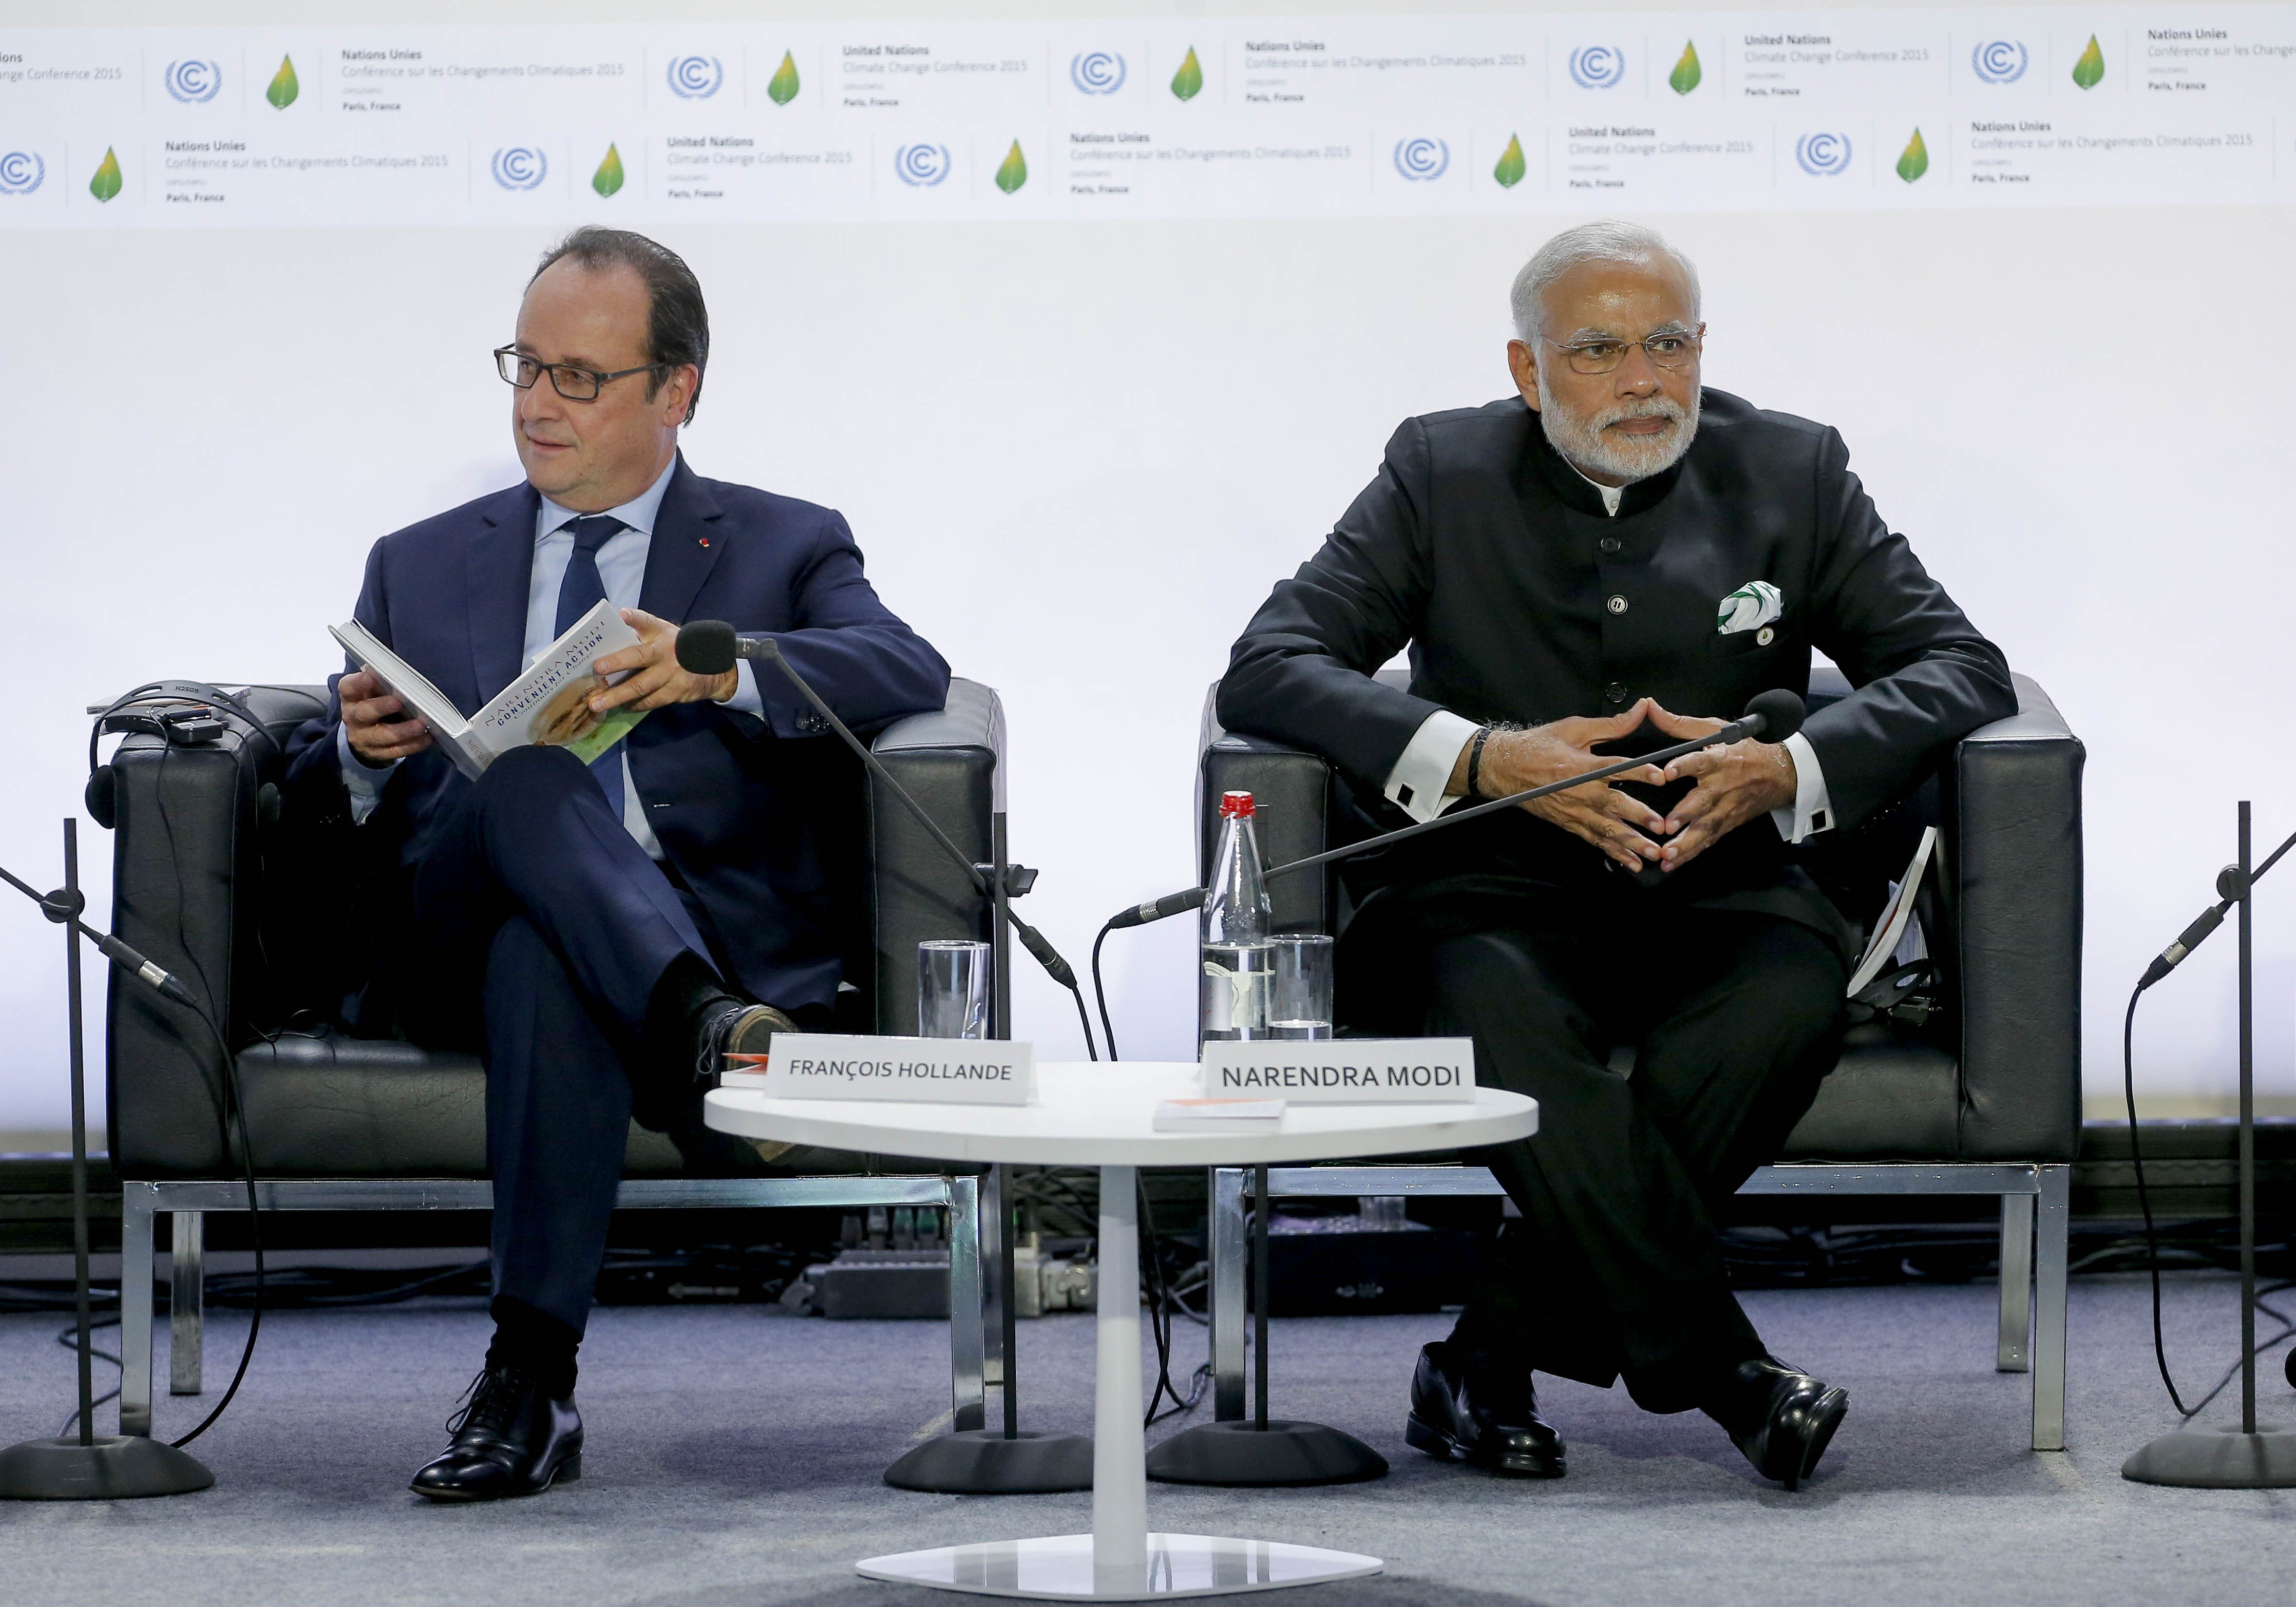 Francois Hollande and Narendra Modi during the 2015 United Nations Climate Change Conference at Le Bourget in Paris, France on Nov. 30, 2015.